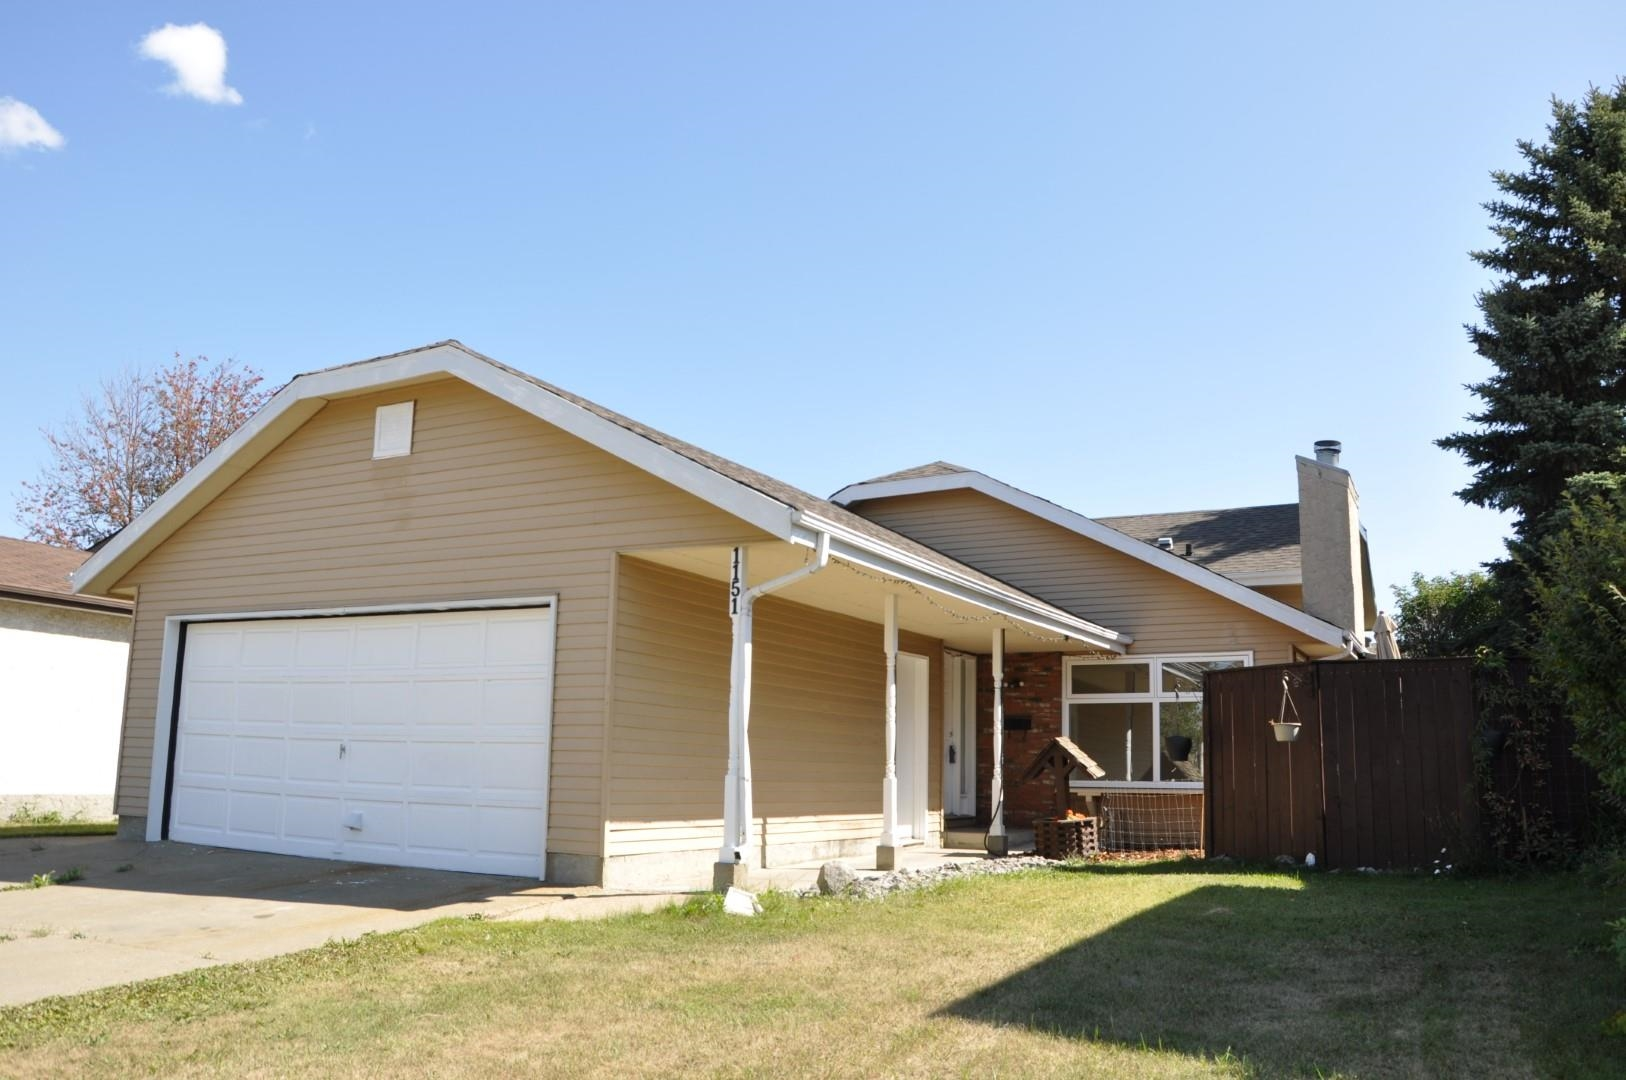 This Crawford Plains 4 level has newer shingles, new windows, new laminate ,carpet and  freshly painted.  Featuring a lovely sized yard and is close to the Henday.  With 3 bedrooms up, another on the 3rd level and 2 full baths and a half bath this home is ready for your family.  A large inviting living room as you enter the home and then through French doors to the dining room and kitchen. A huge family room on the third level adds up to 1882 square feet of living space plus an unspoiled basement awaiting your personal touches. 4 bedrooms, 2 and a half baths and a great yard. Your family will be happy here.  The attached double garage completes the home and it is available for quick possession!